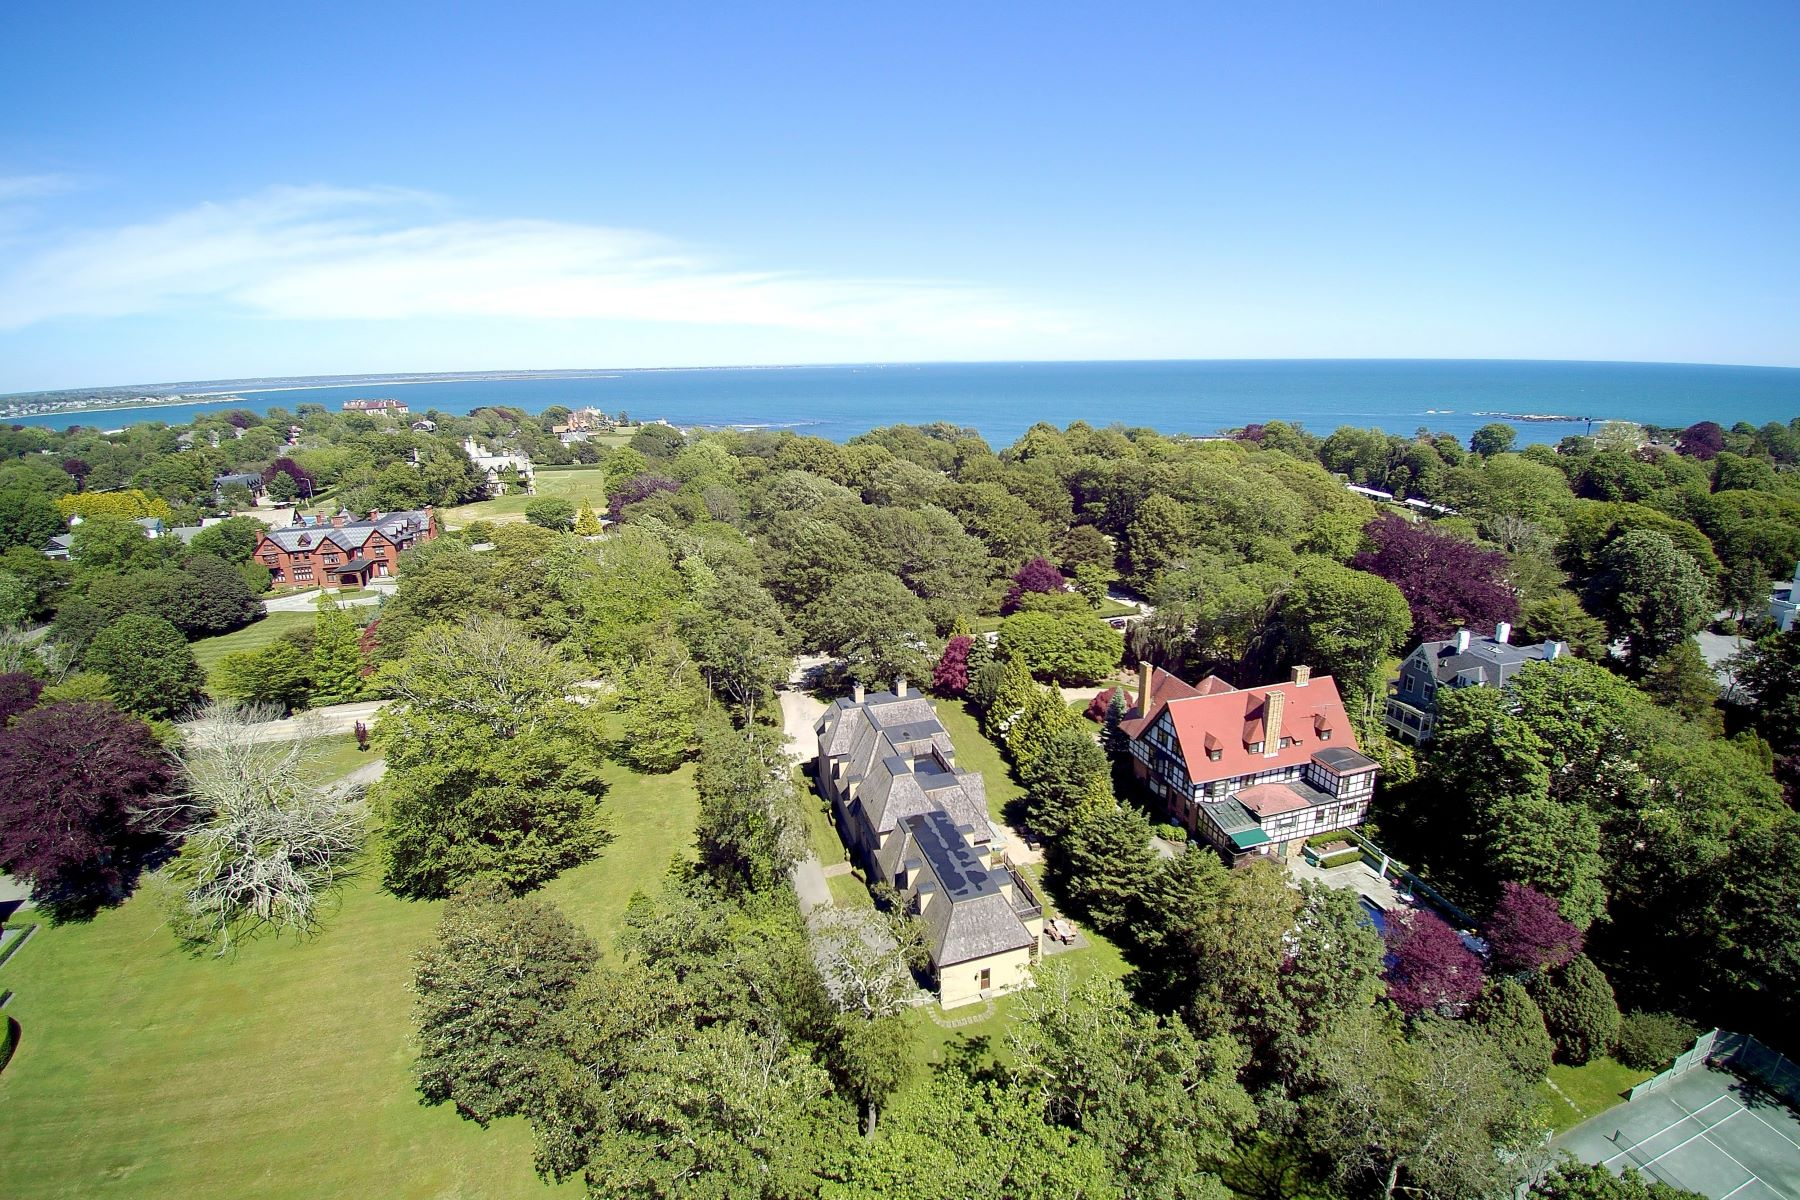 Single Family Homes for Sale at On Famed Bellevue Avenue 529 Bellevue Avenue Newport, Rhode Island 02840 United States